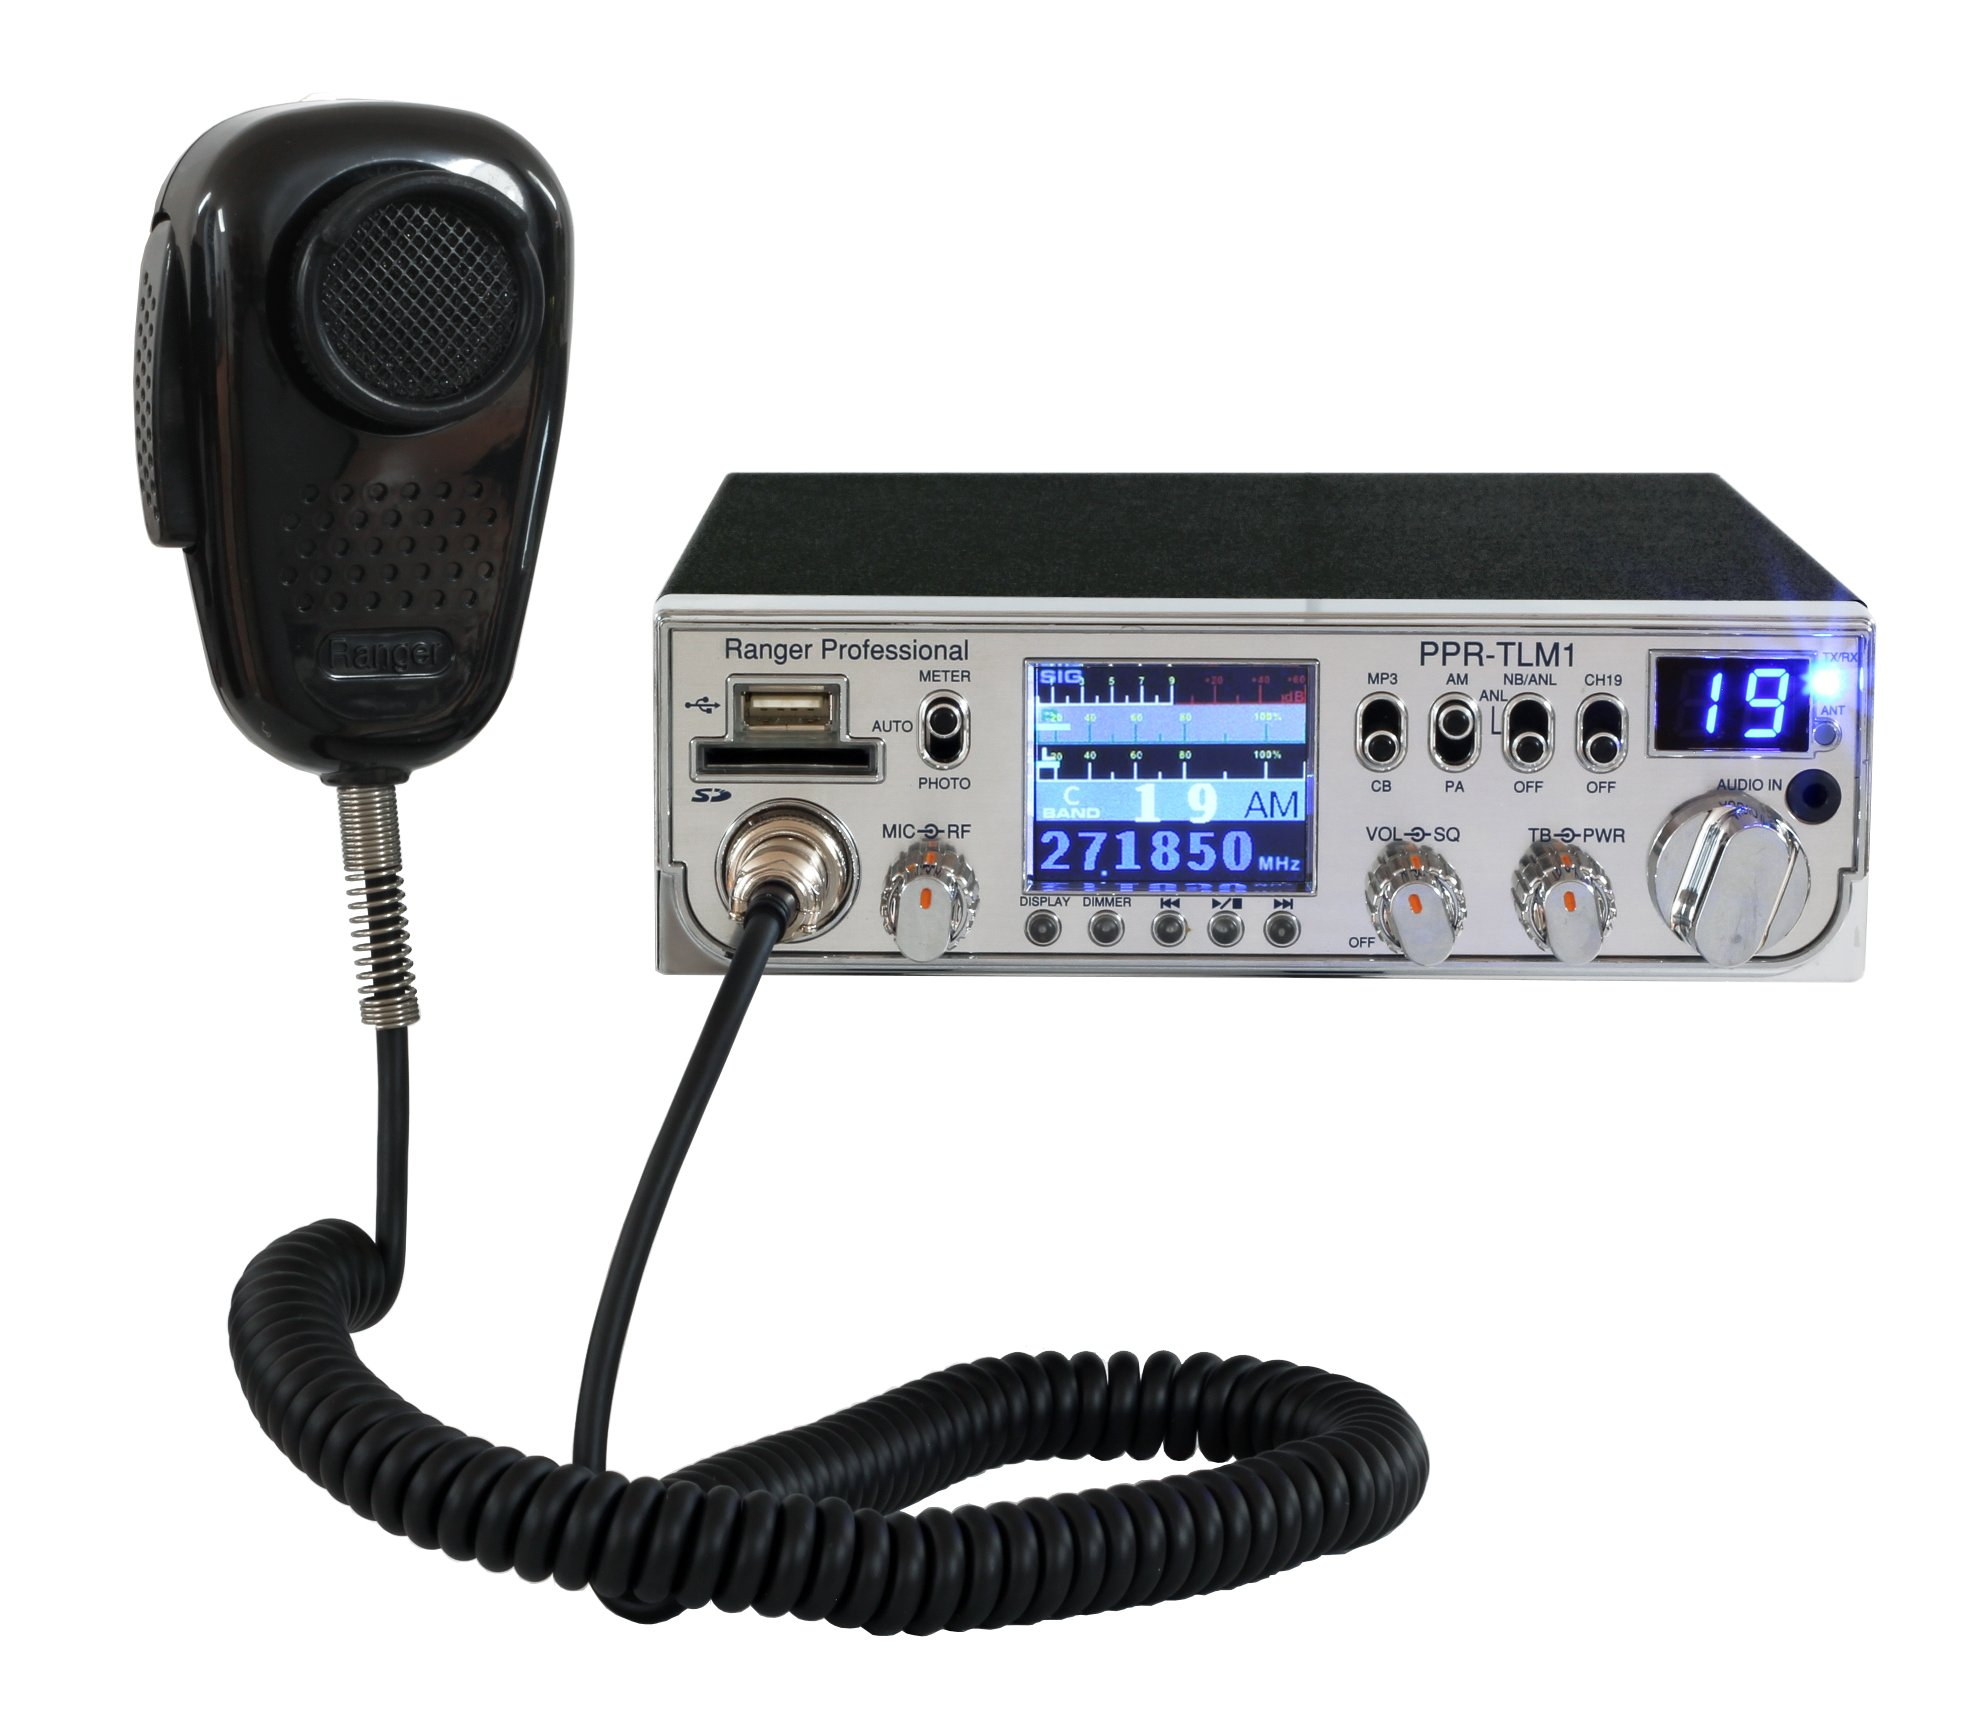 Ranger Professional PPR-TLM1 40 Channel AM Mobile CB Radio with TFT Display and SRA-198 Noise Cancelling Microphone by Ranger Communications